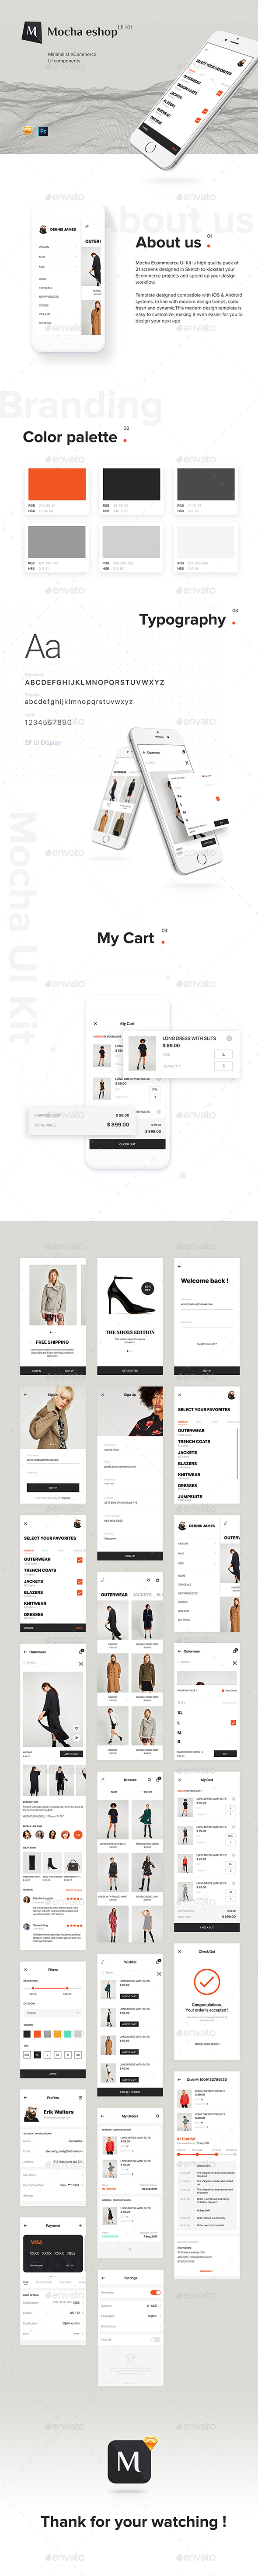 GraphicRiver eShop e-commerce App UI Kit 20998129